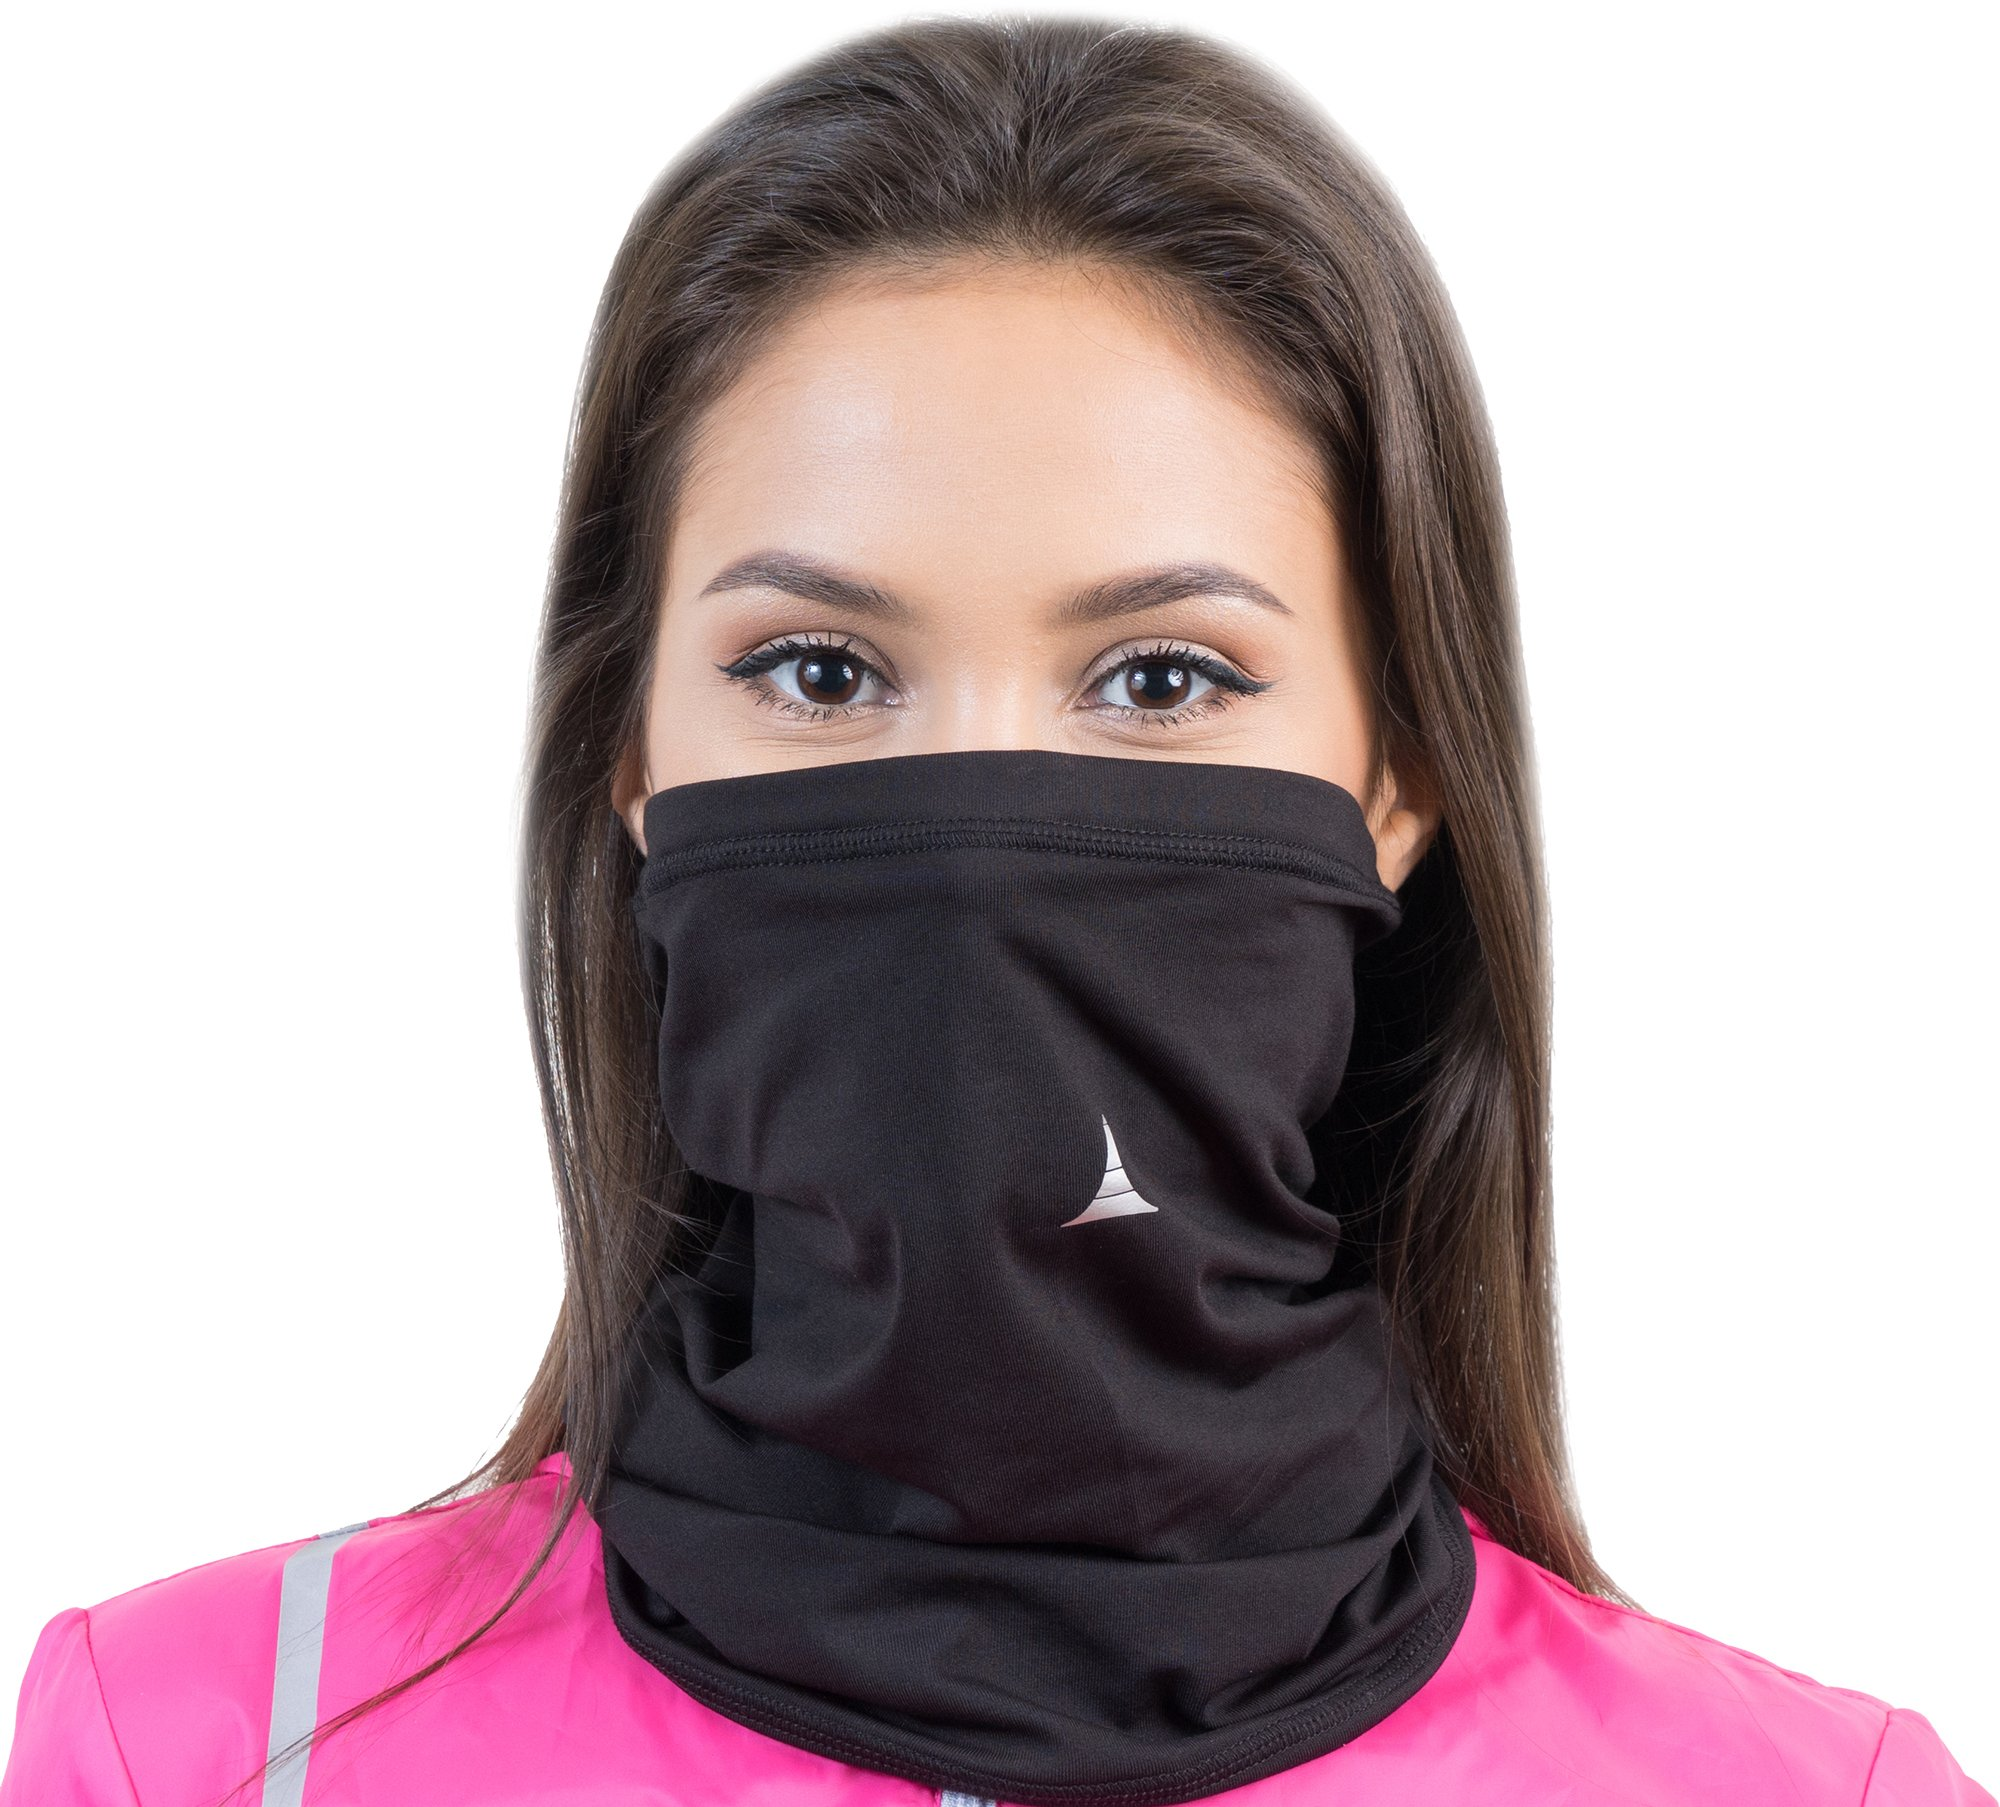 Fleece Neck Warmer [Solids]/Reversible Neck Gaiter Tube, Ear Warmer Headband, Mask & Beanie. Ultimate Thermal Retention, Versatility & Style. Performance Comfort Fleece & Polyester Construction